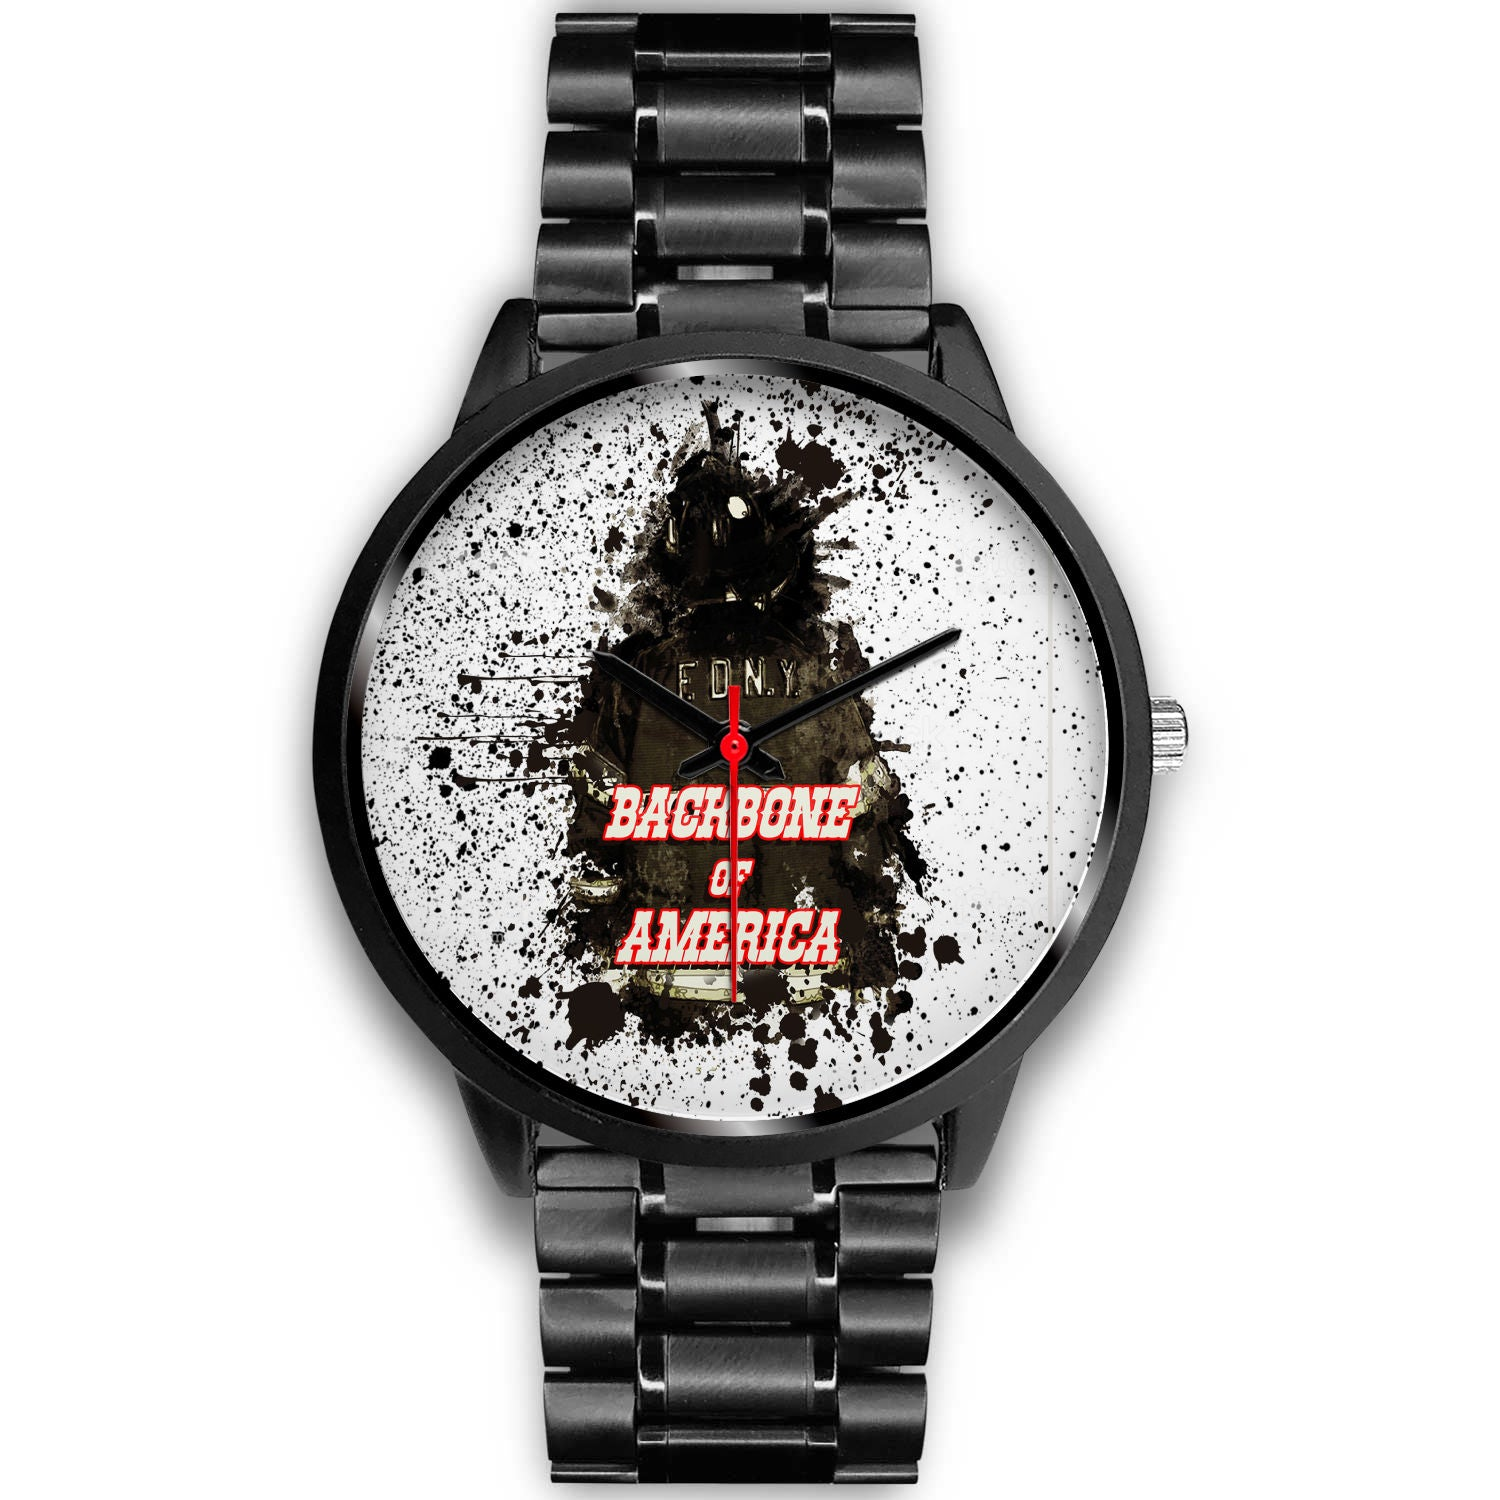 VIRA STAINLESS STEEL WATCH FOR FIREFIGHTER LOVERS